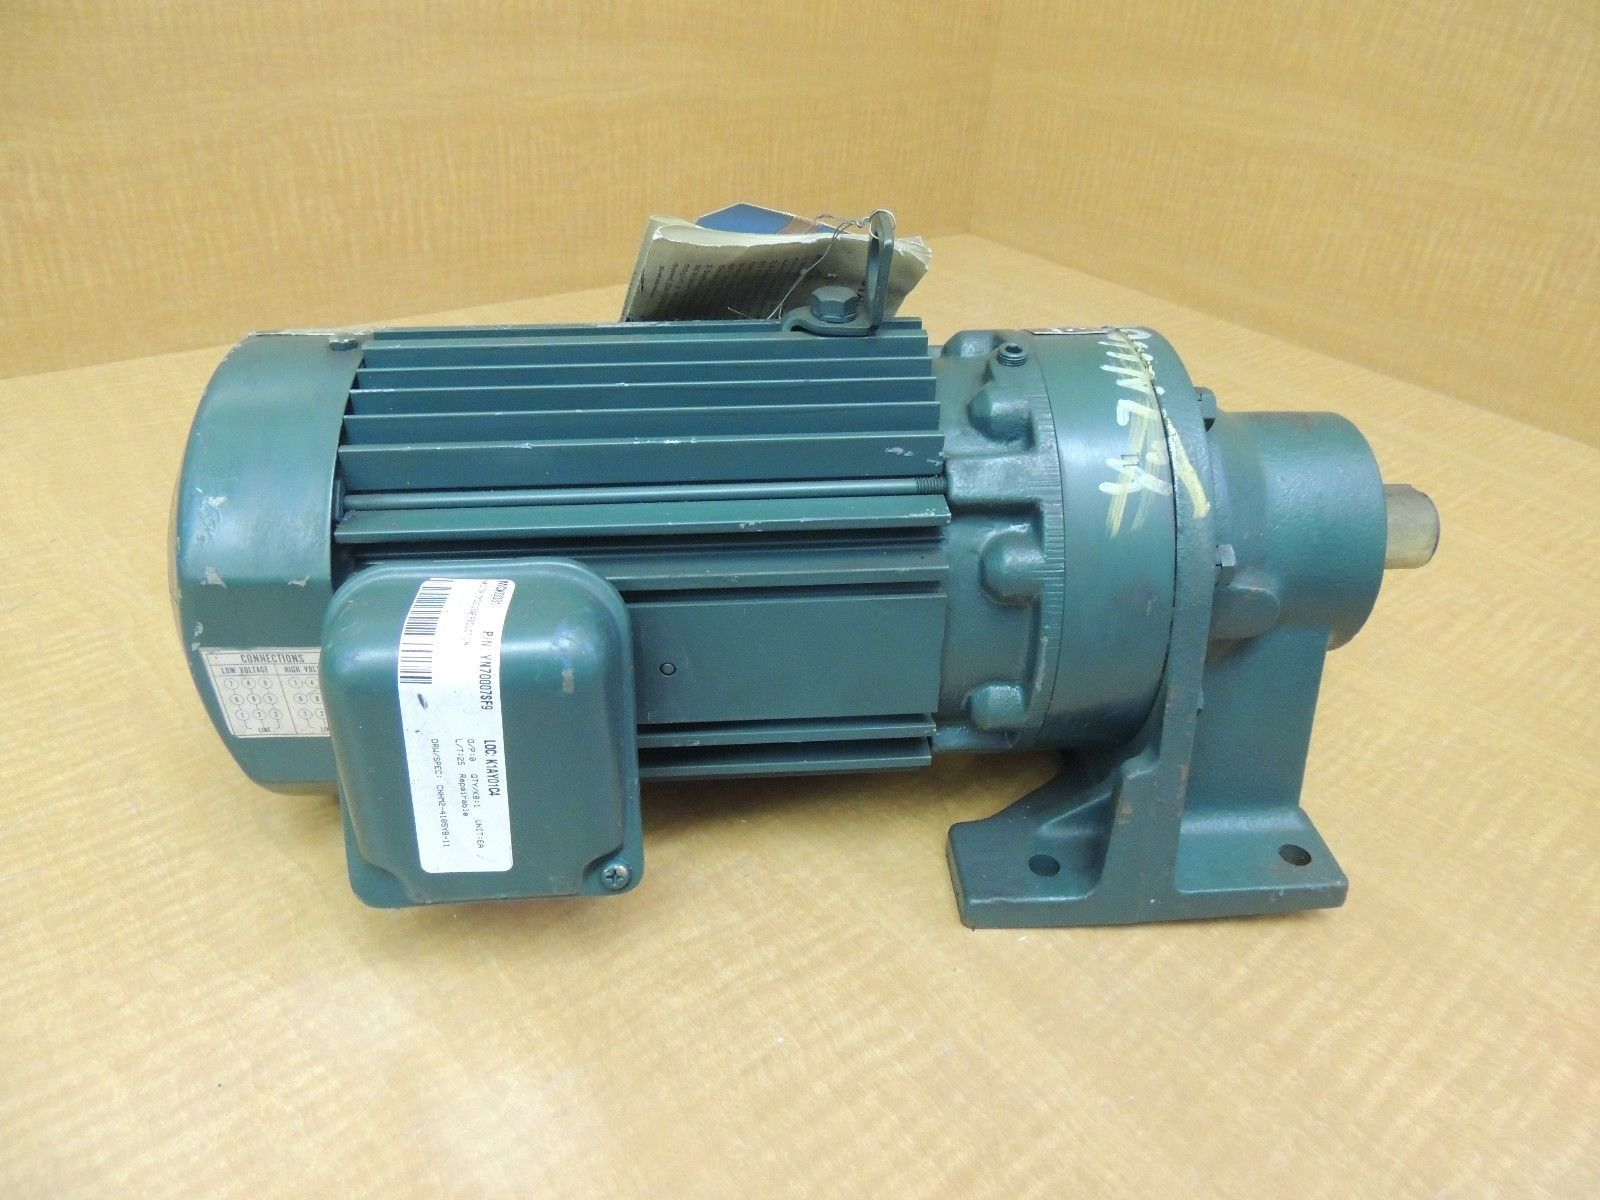 New Sumitomo Sm Cylco 3 Phase Induction Motor M6236041